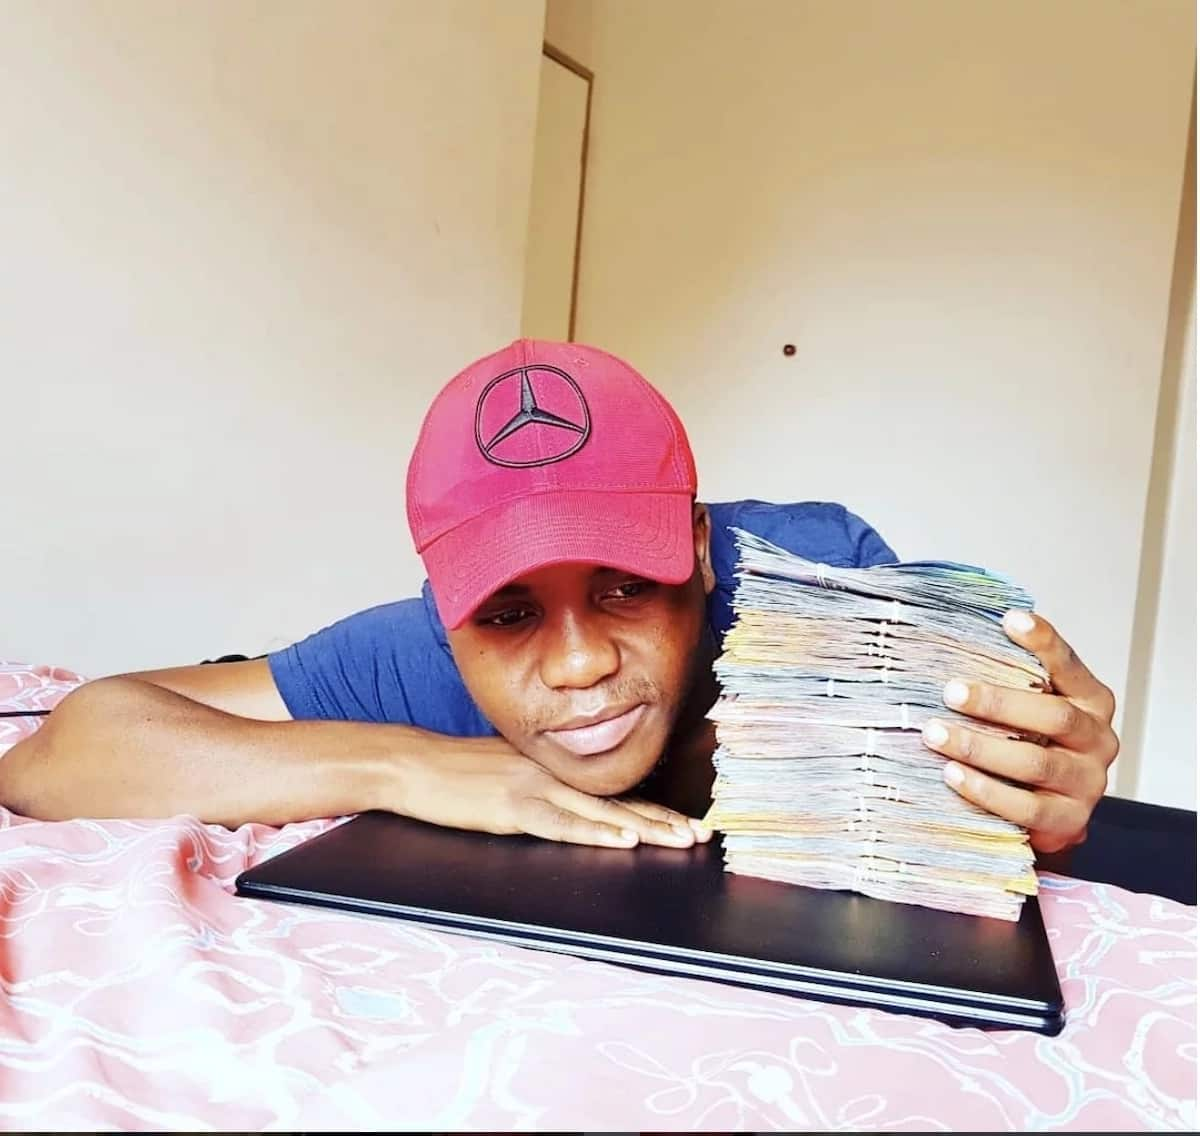 From living in a small shack to millionaire at 23: The story of Kgopotso Mmutlane